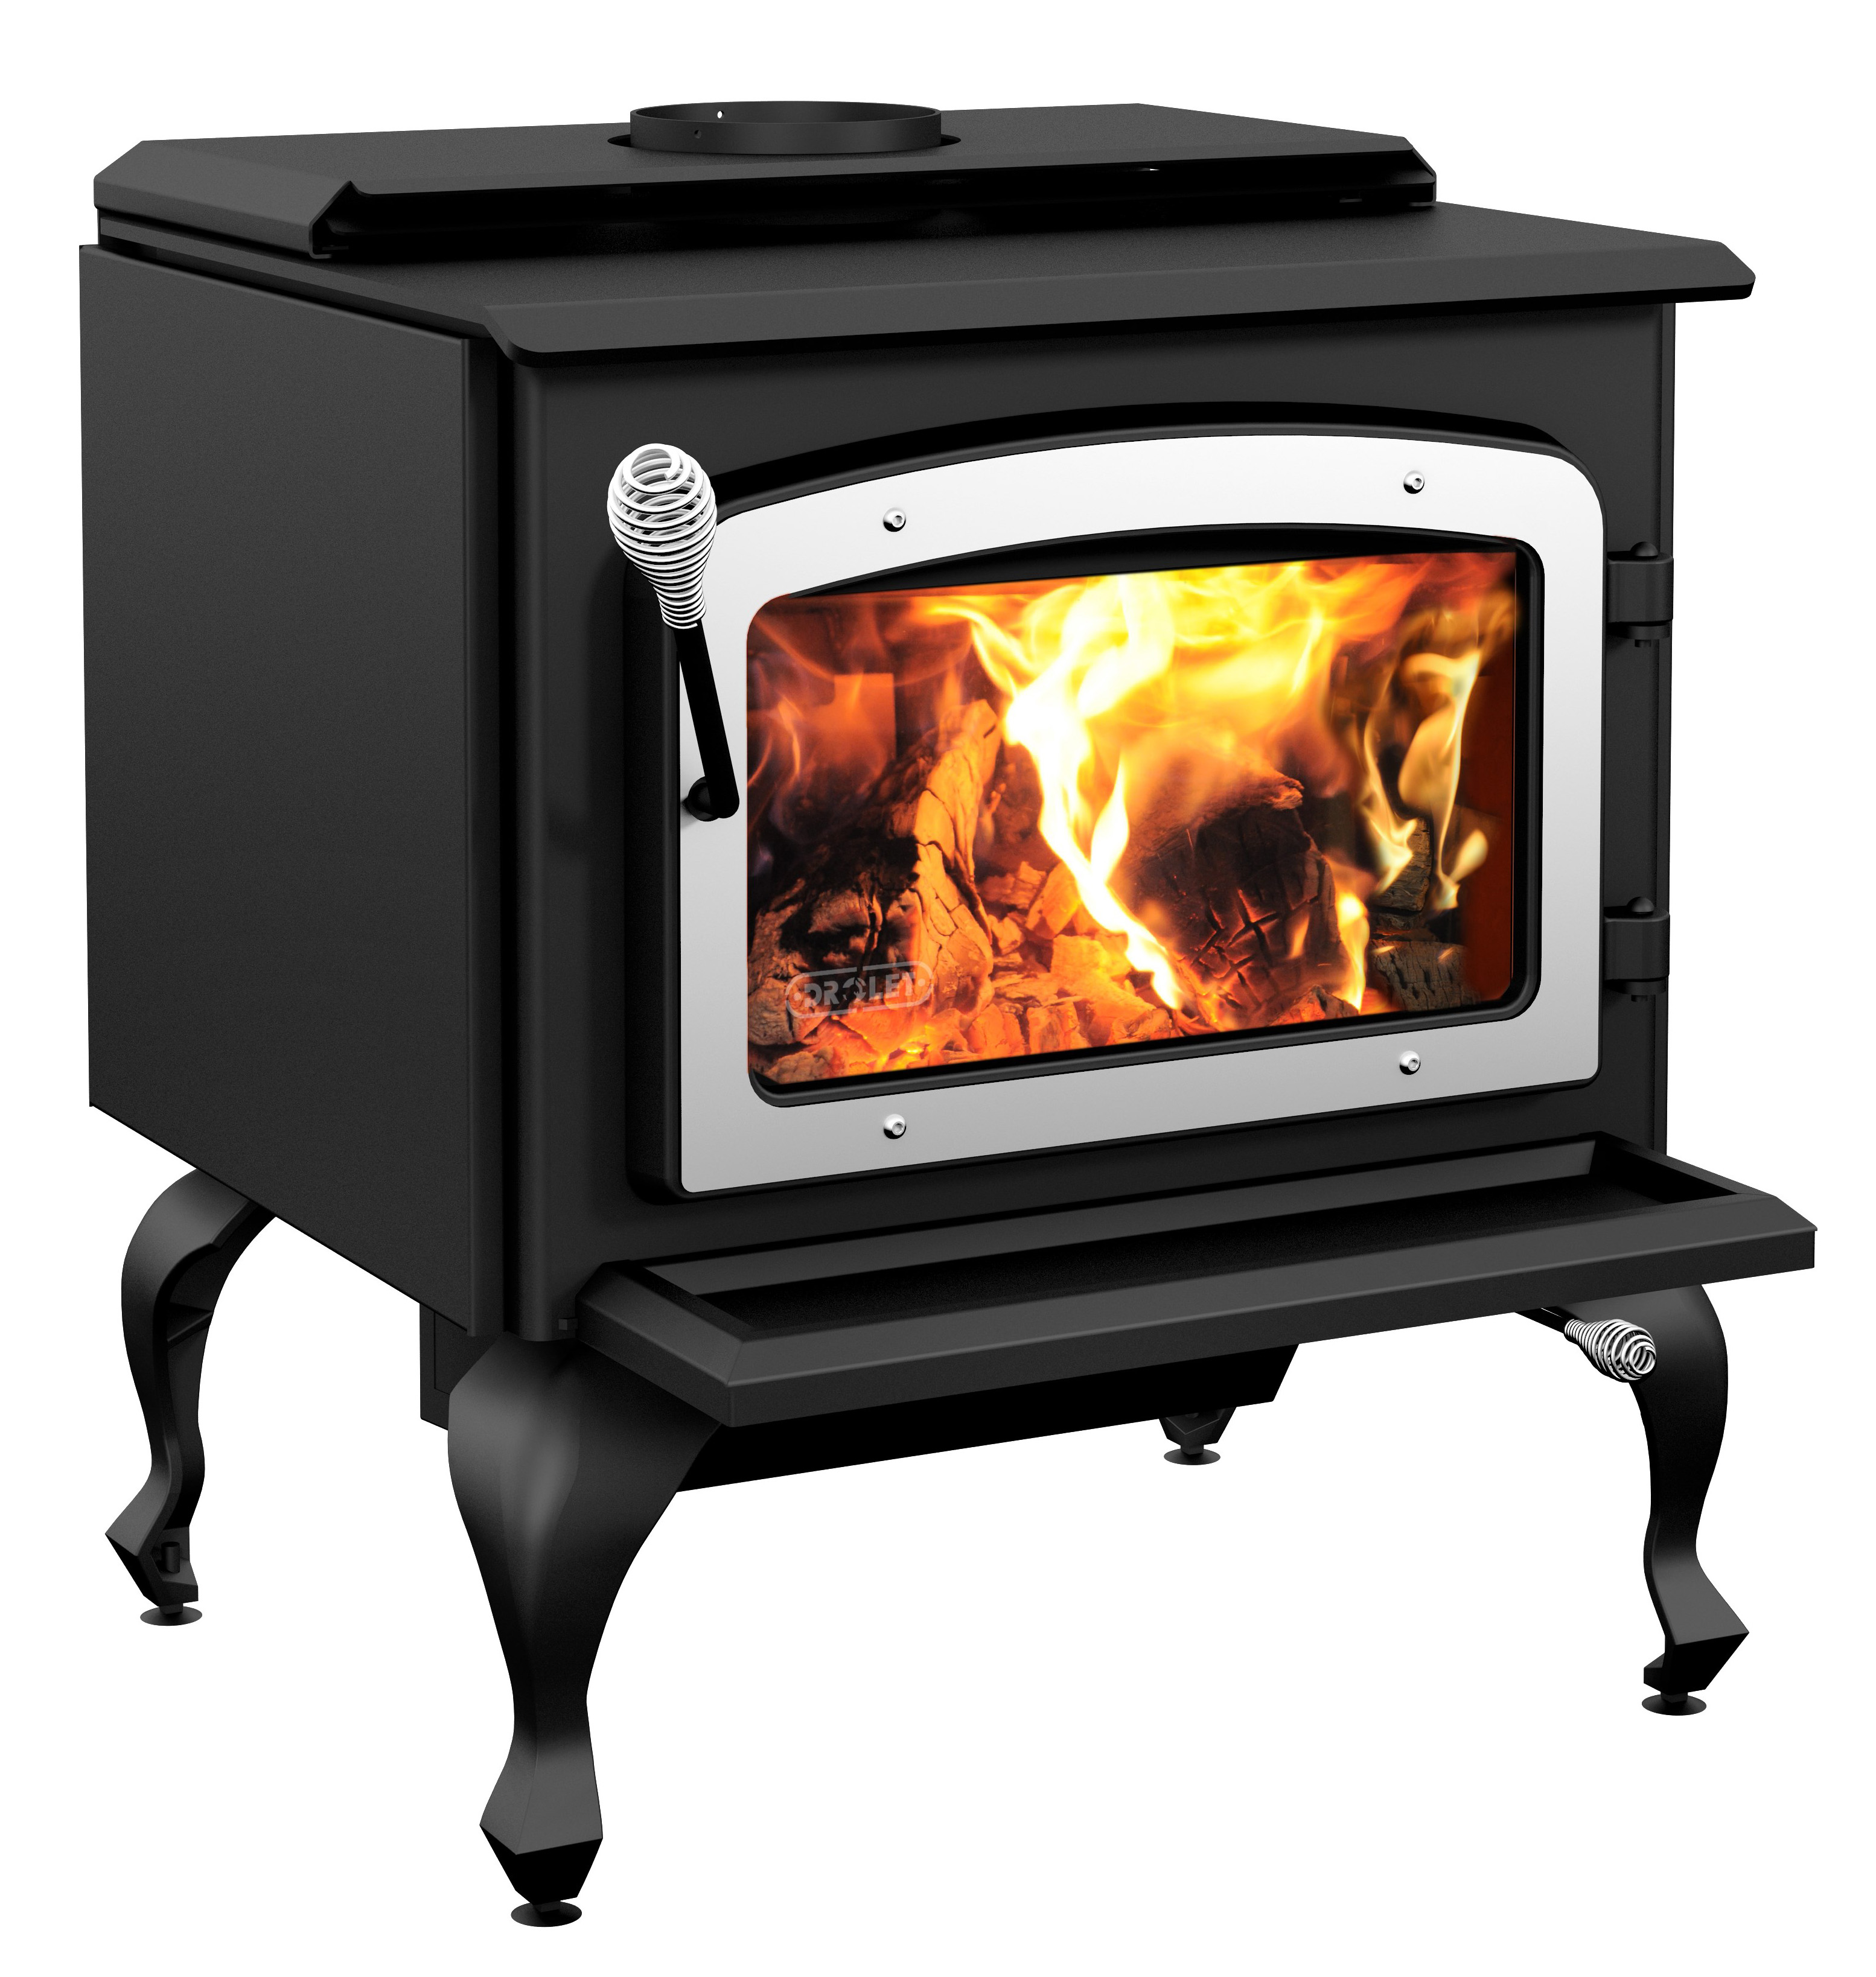 Wood Stove On Legs Model Escape 1800 - Black Legs & Brushed Nickel Door